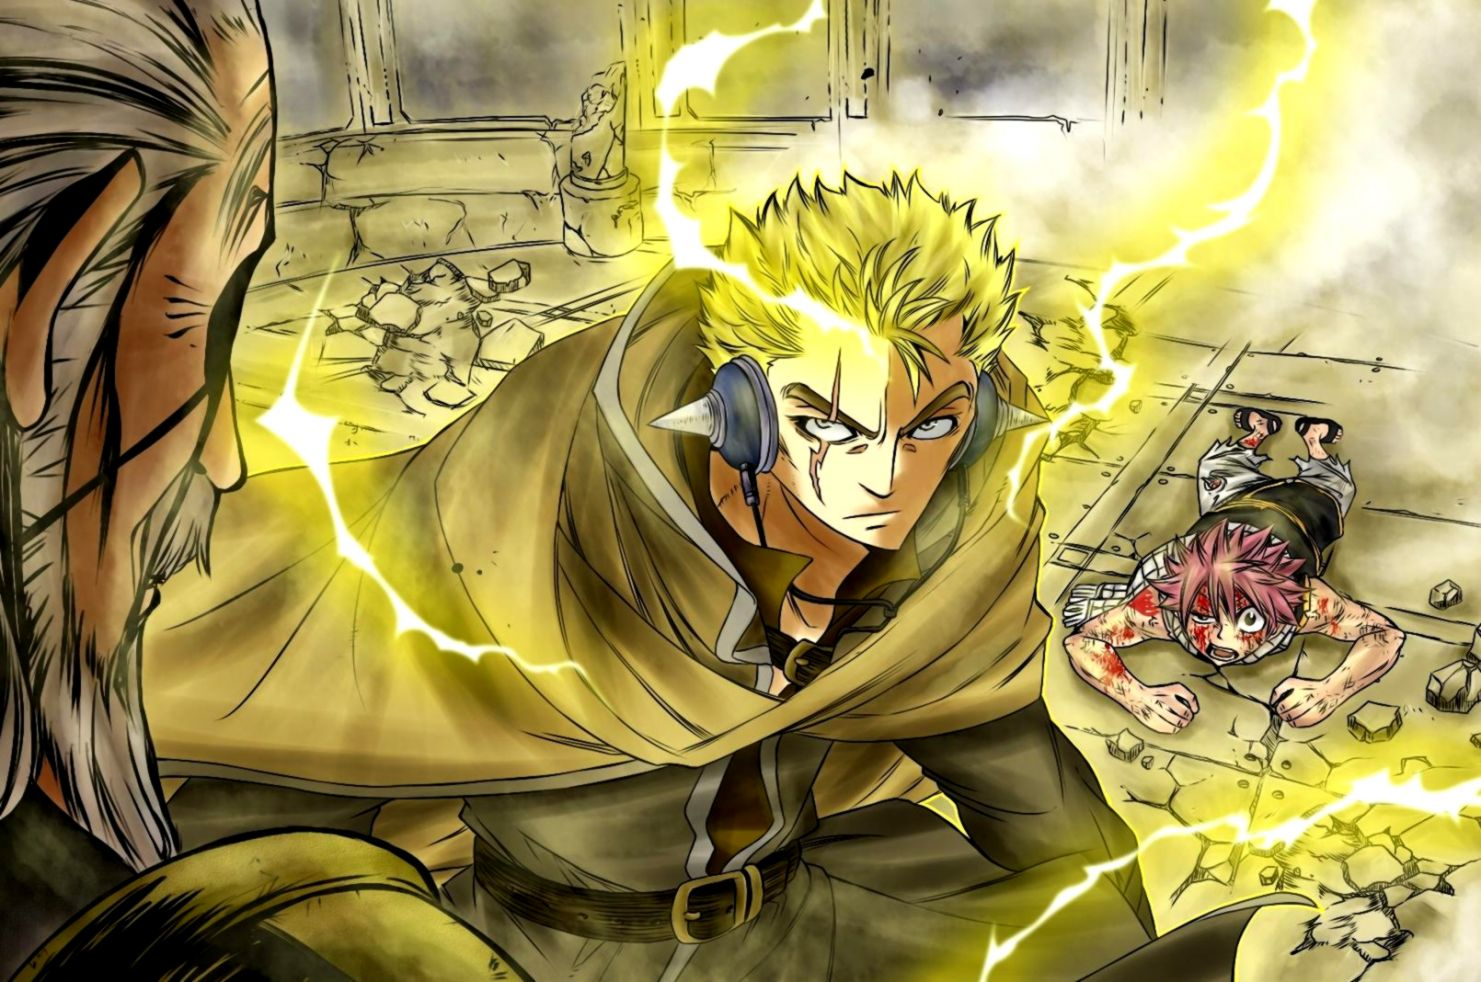 10 fairy tail wallpapers hd for pc or mobile – otakukart